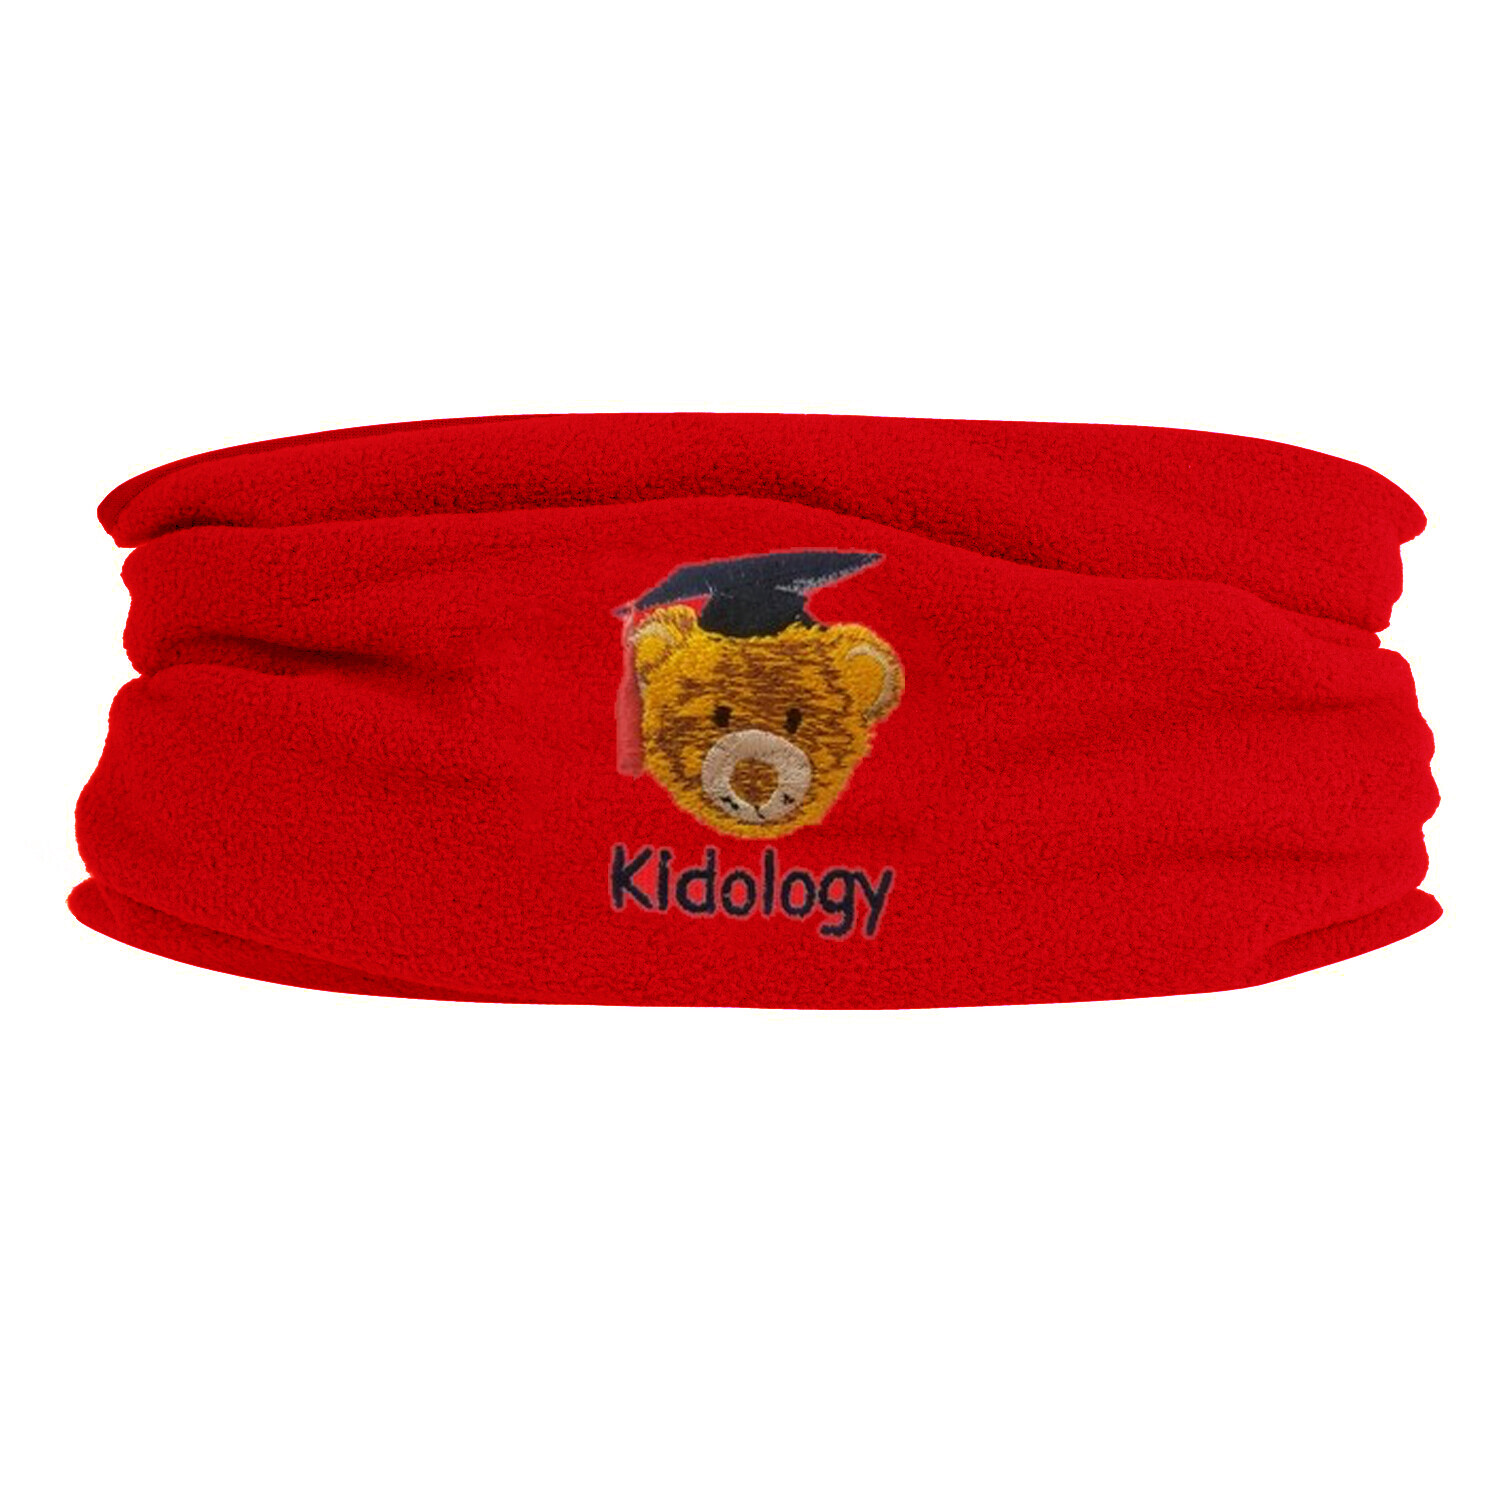 Kidology Nursery Staff Snood (RCSB920)